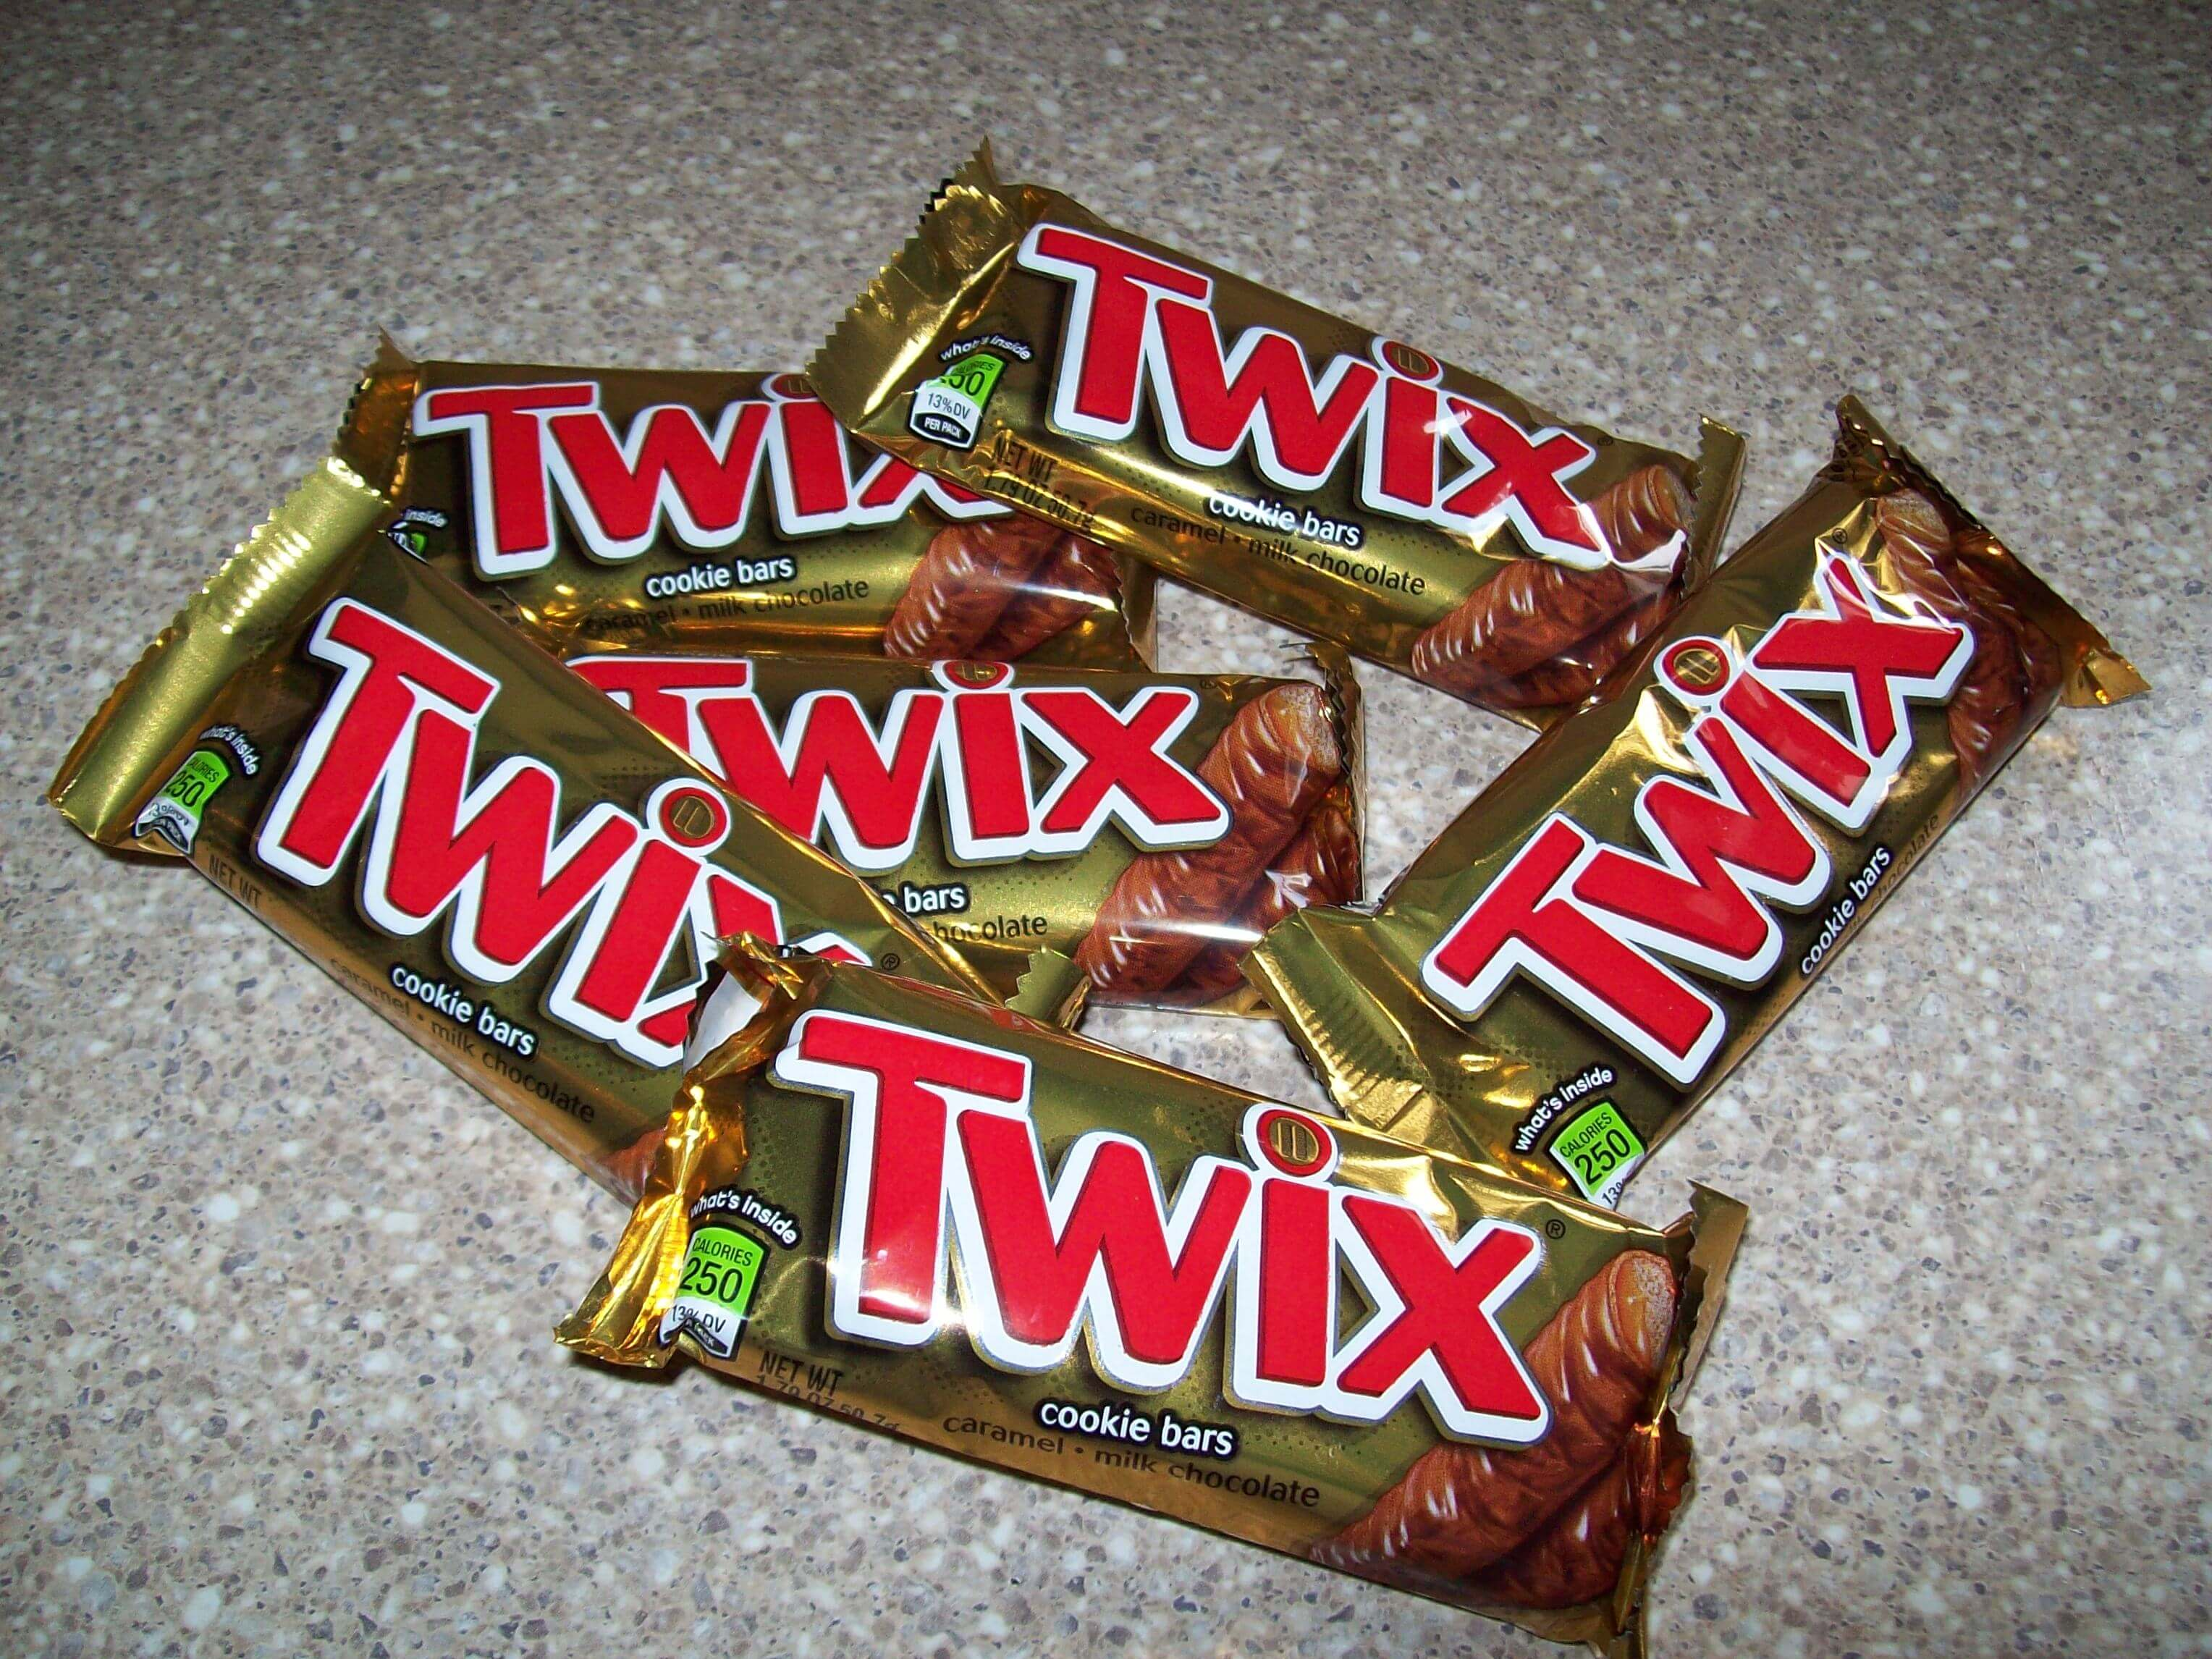 twix candy bars background wallpaper 70052